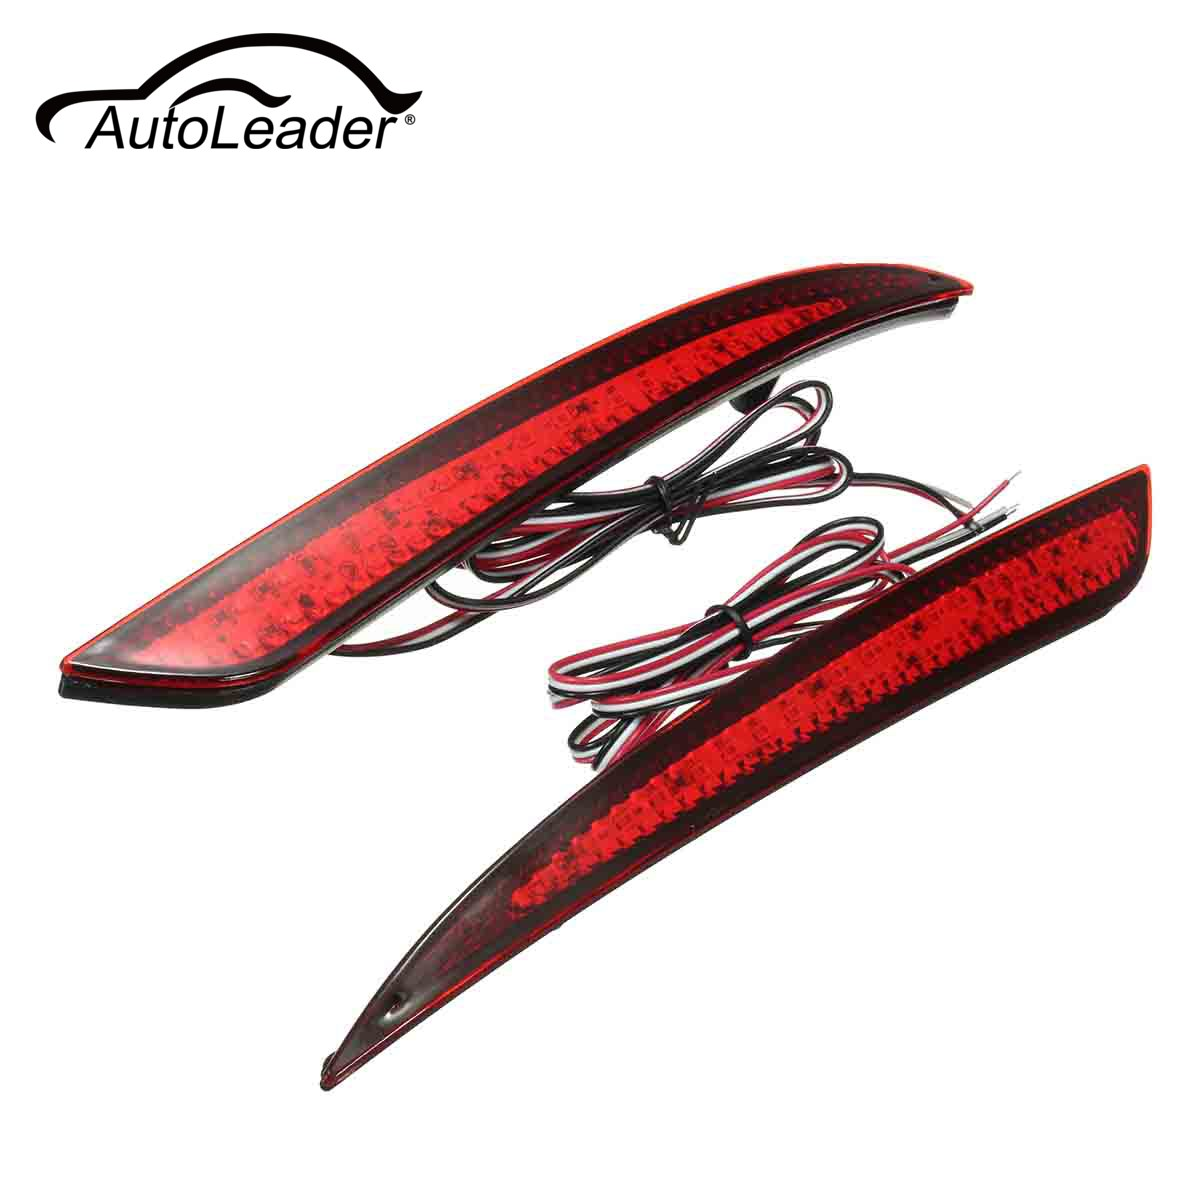 Autoleader 1Pair Red Len Reflector Rear Tail LED Bumper Light Brake Stop Lamp Fog Light For Ford/Fusion 2013-2015 12V 30 LEDs  clear smoke red lens motorcycle red led brake stop rear fender tip tail light indicator lamp for harley breakout fxsb 2013 2016